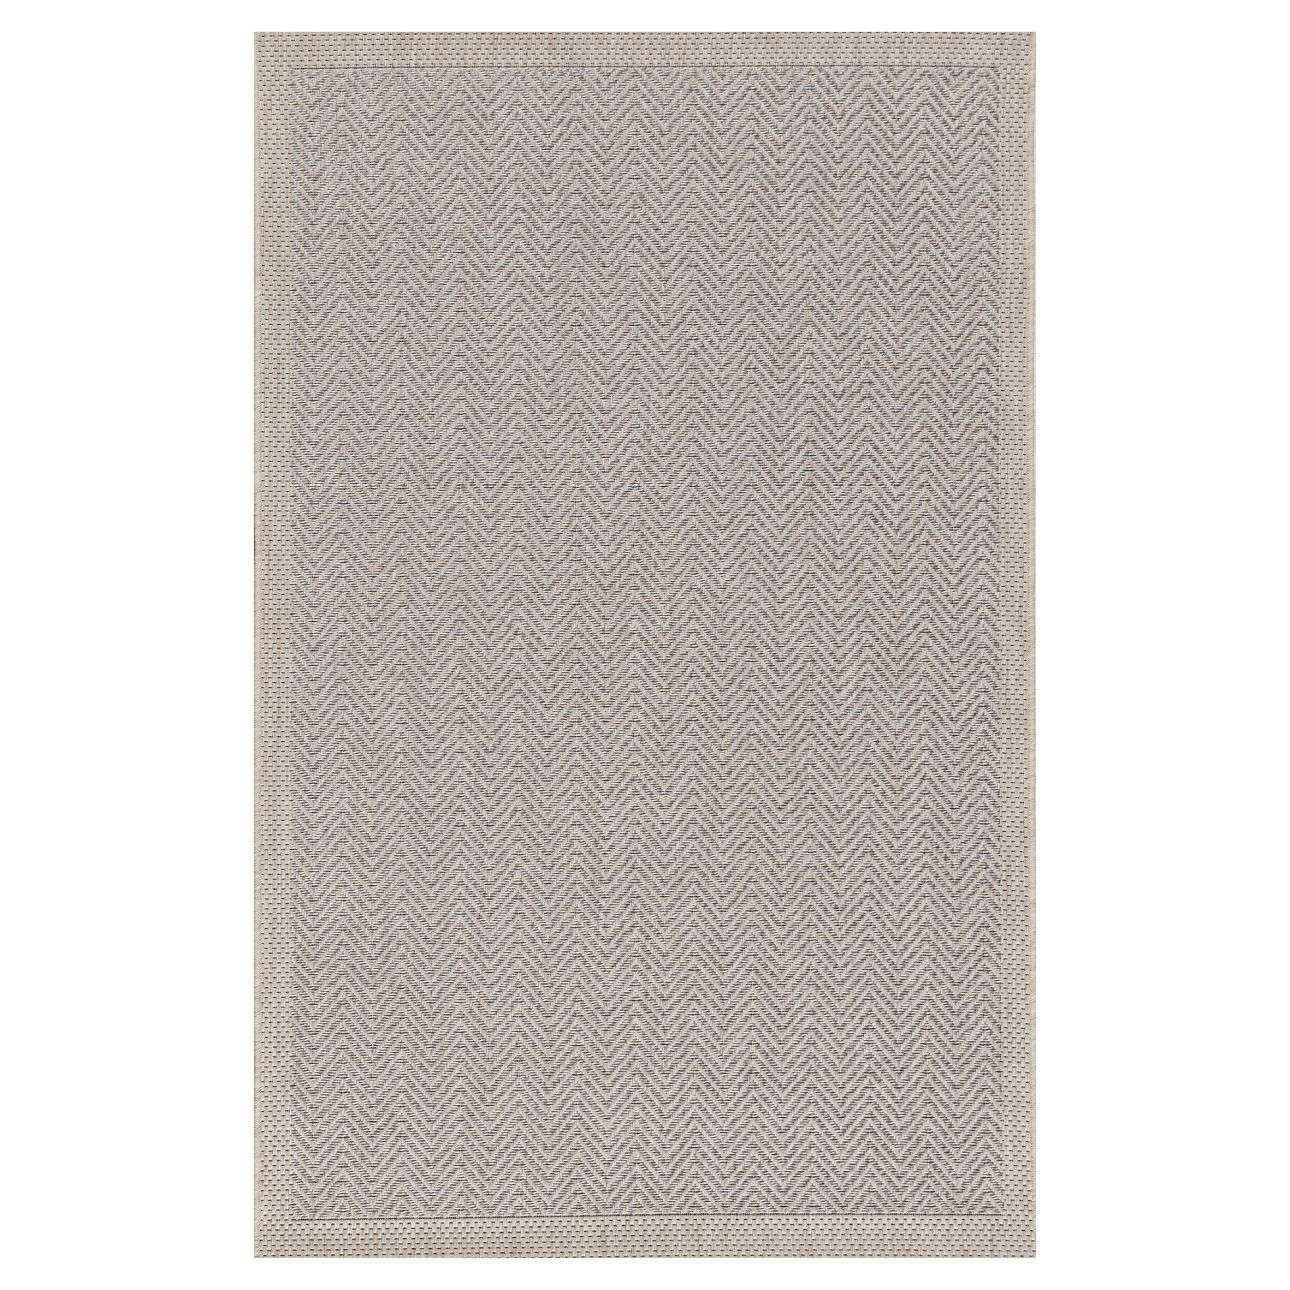 Breeze Sand/Cliff Grey Area Rug 200x290cm